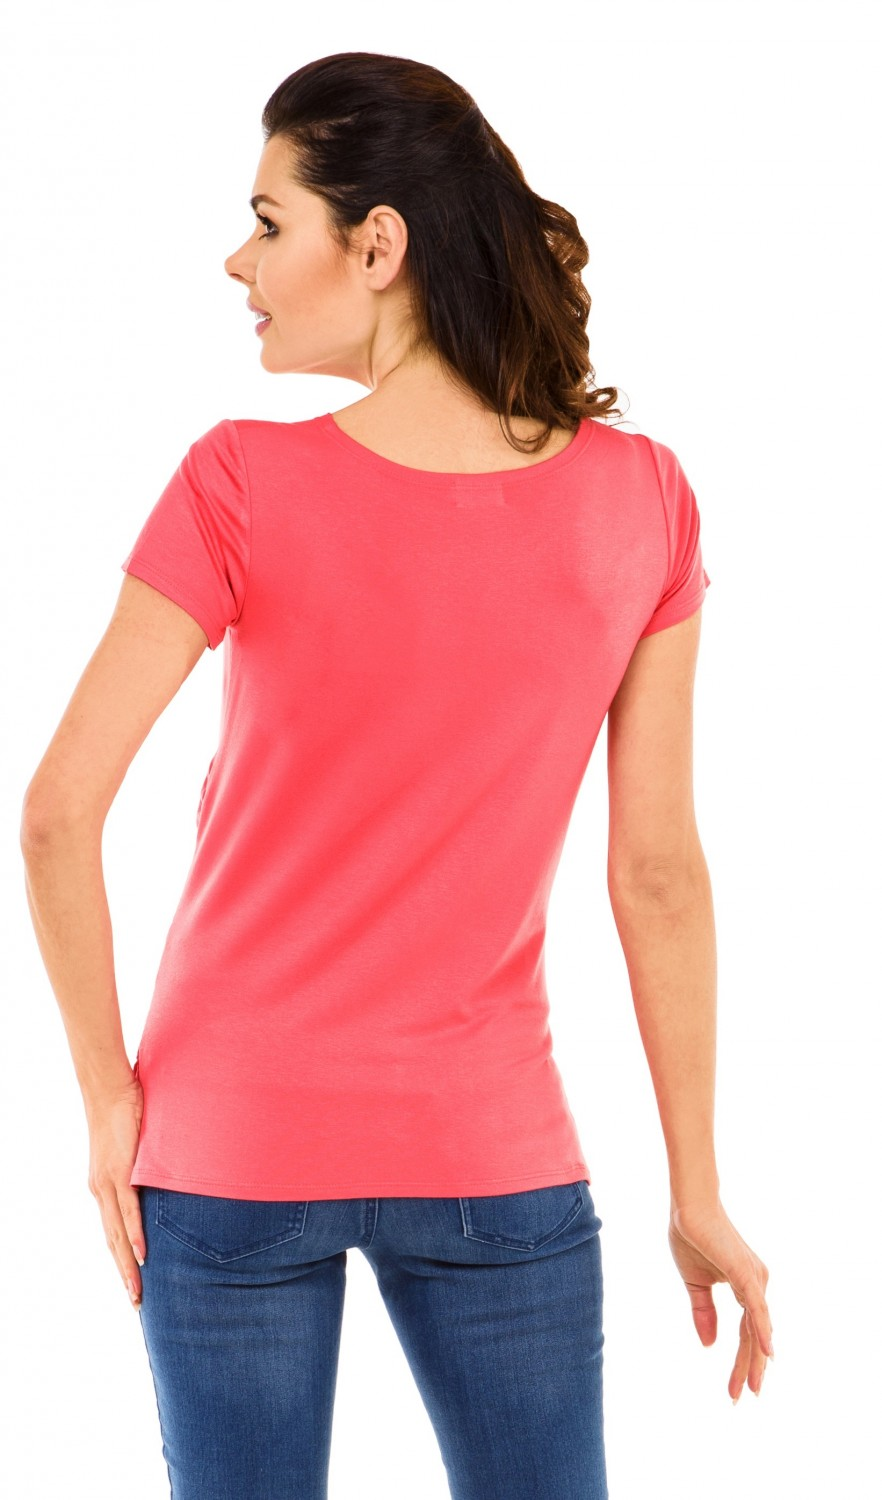 Some short-sleeve t-shirts have funny sayings that'll make you laugh. Pretty long-sleeve items give you a smart and polished look. Selections come in variety of fabrics, including cotton, polyester, spandex, rayon, and various combinations of these materials. Maternity t-shirts are available with three types of sleeves: short, three-quarter, and long.